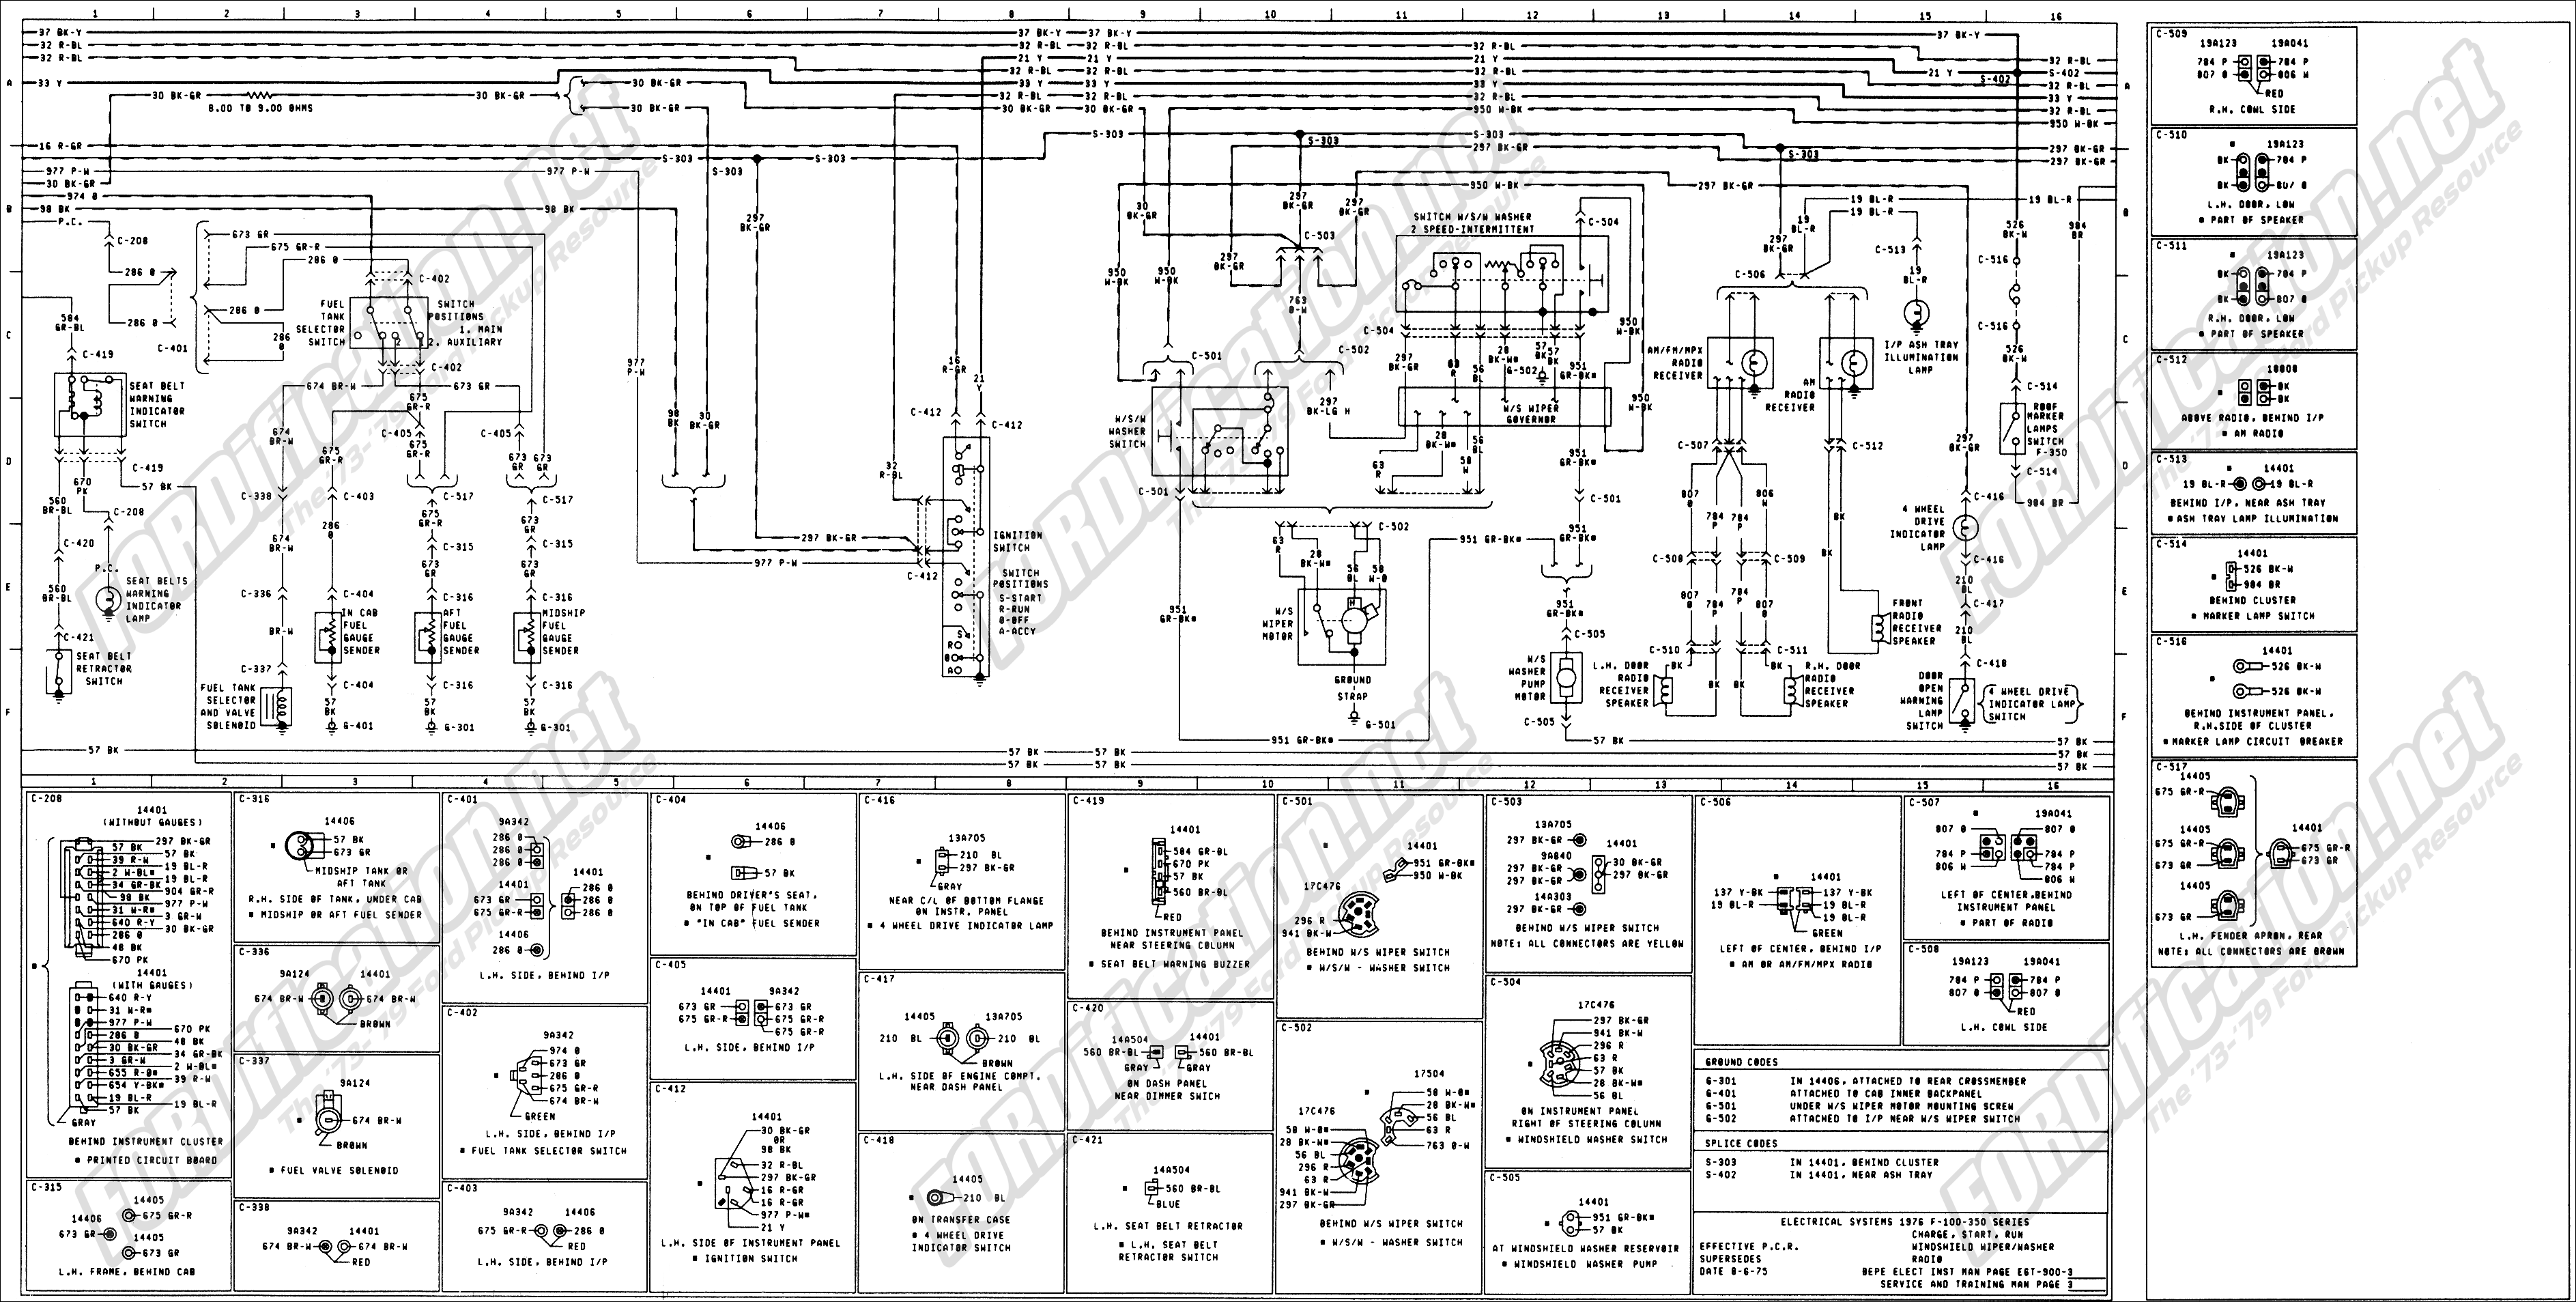 wiring_76master_3of9 1973 1979 ford truck wiring diagrams & schematics fordification net installation wiring diagram for industry at n-0.co